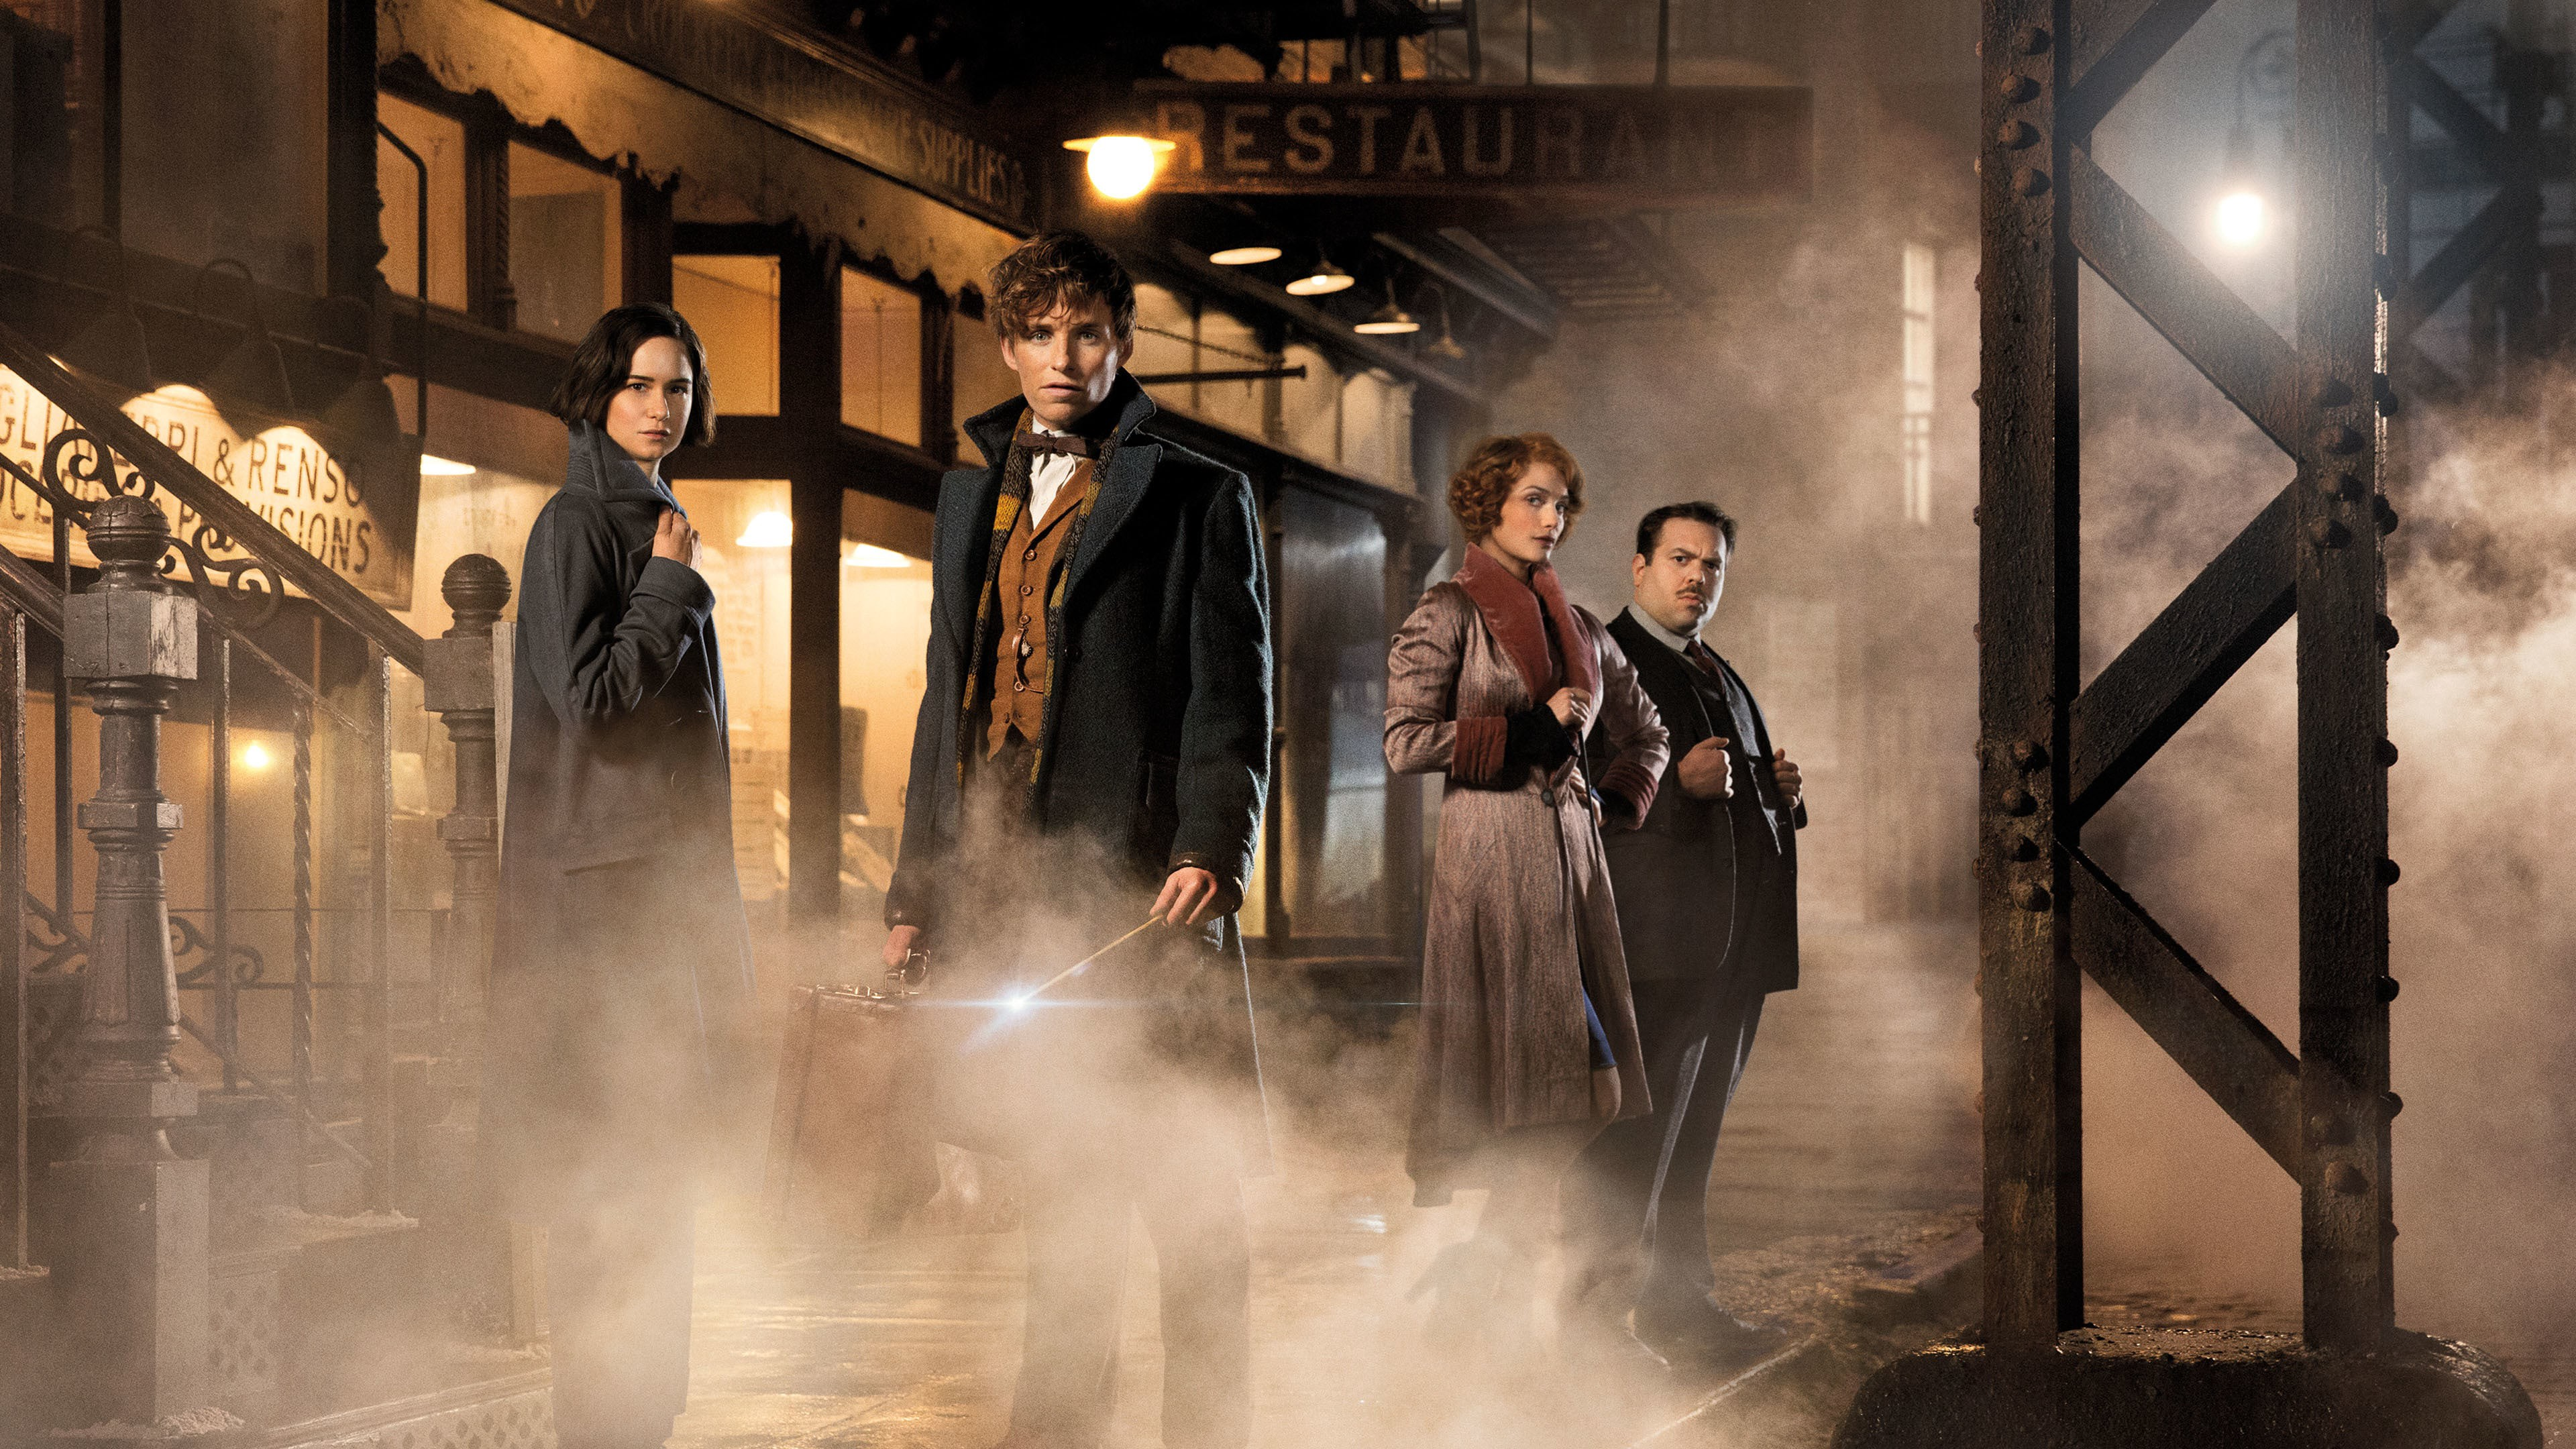 fantastic beasts and where to find them watch free reddit